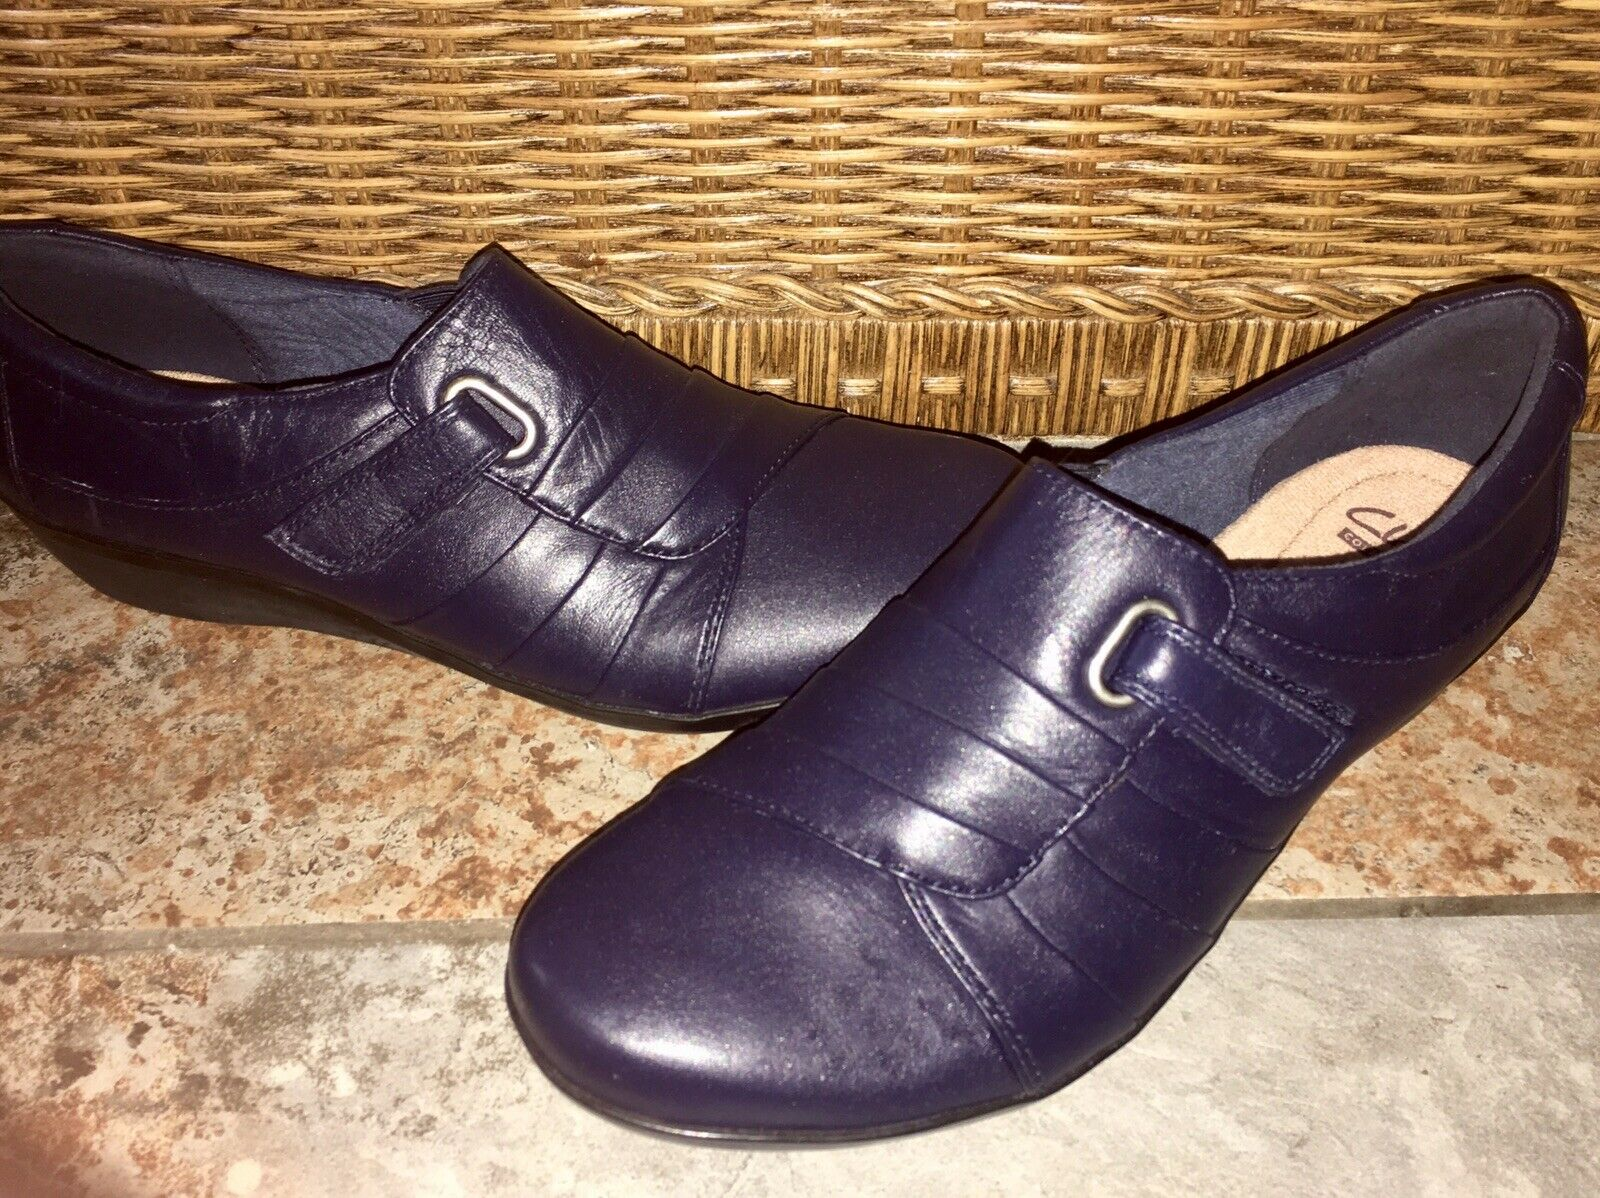 Clarks NEW Women's Navy bluee Leather Slip On Oxfords shoes 8.5 M Like Heidi